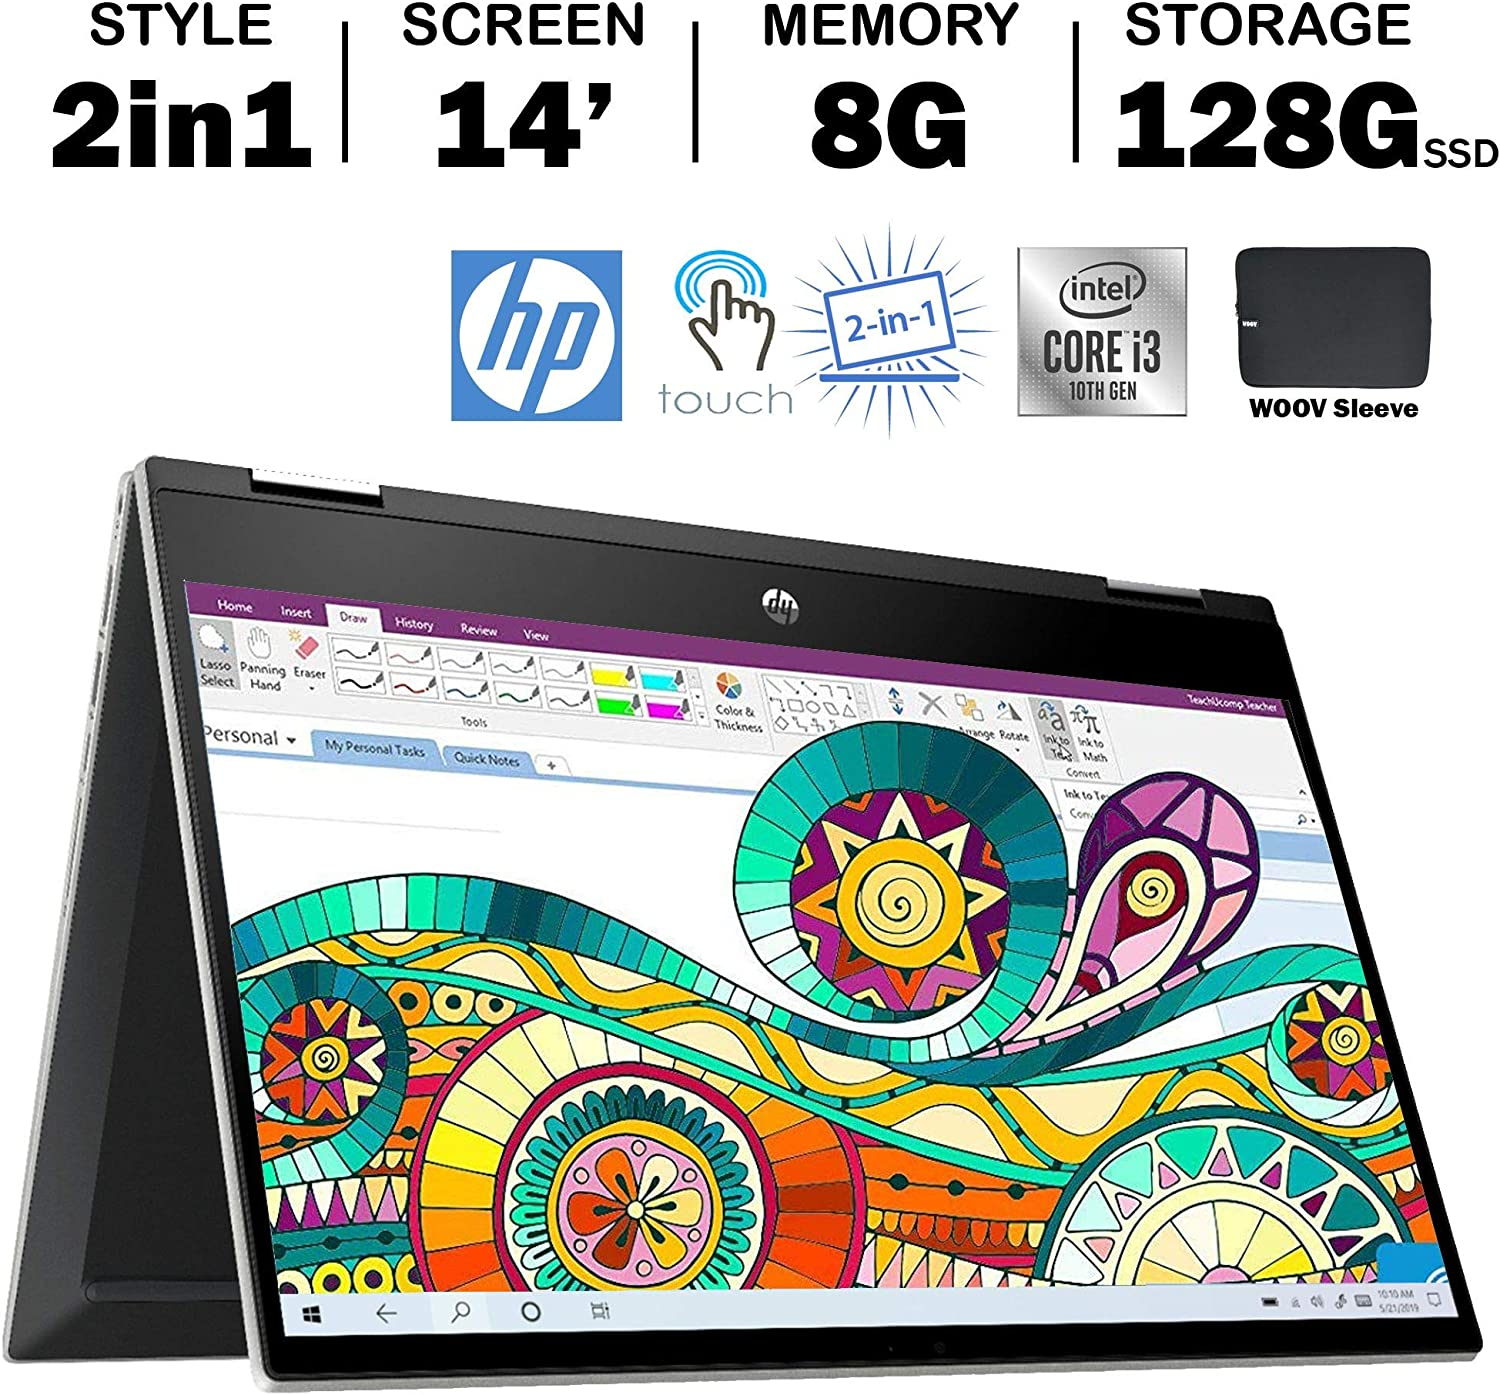 Hp Pavilion X360 14 Inch Student and Business 2-in-1 Touchscreen Laptop with Woov Sleeve, Intel Dual-core i3-1005G1 (Beat i5-7200U), 12GB RAM, 512GB PCIe SSD, Wireless AC, Windows 10, Silver